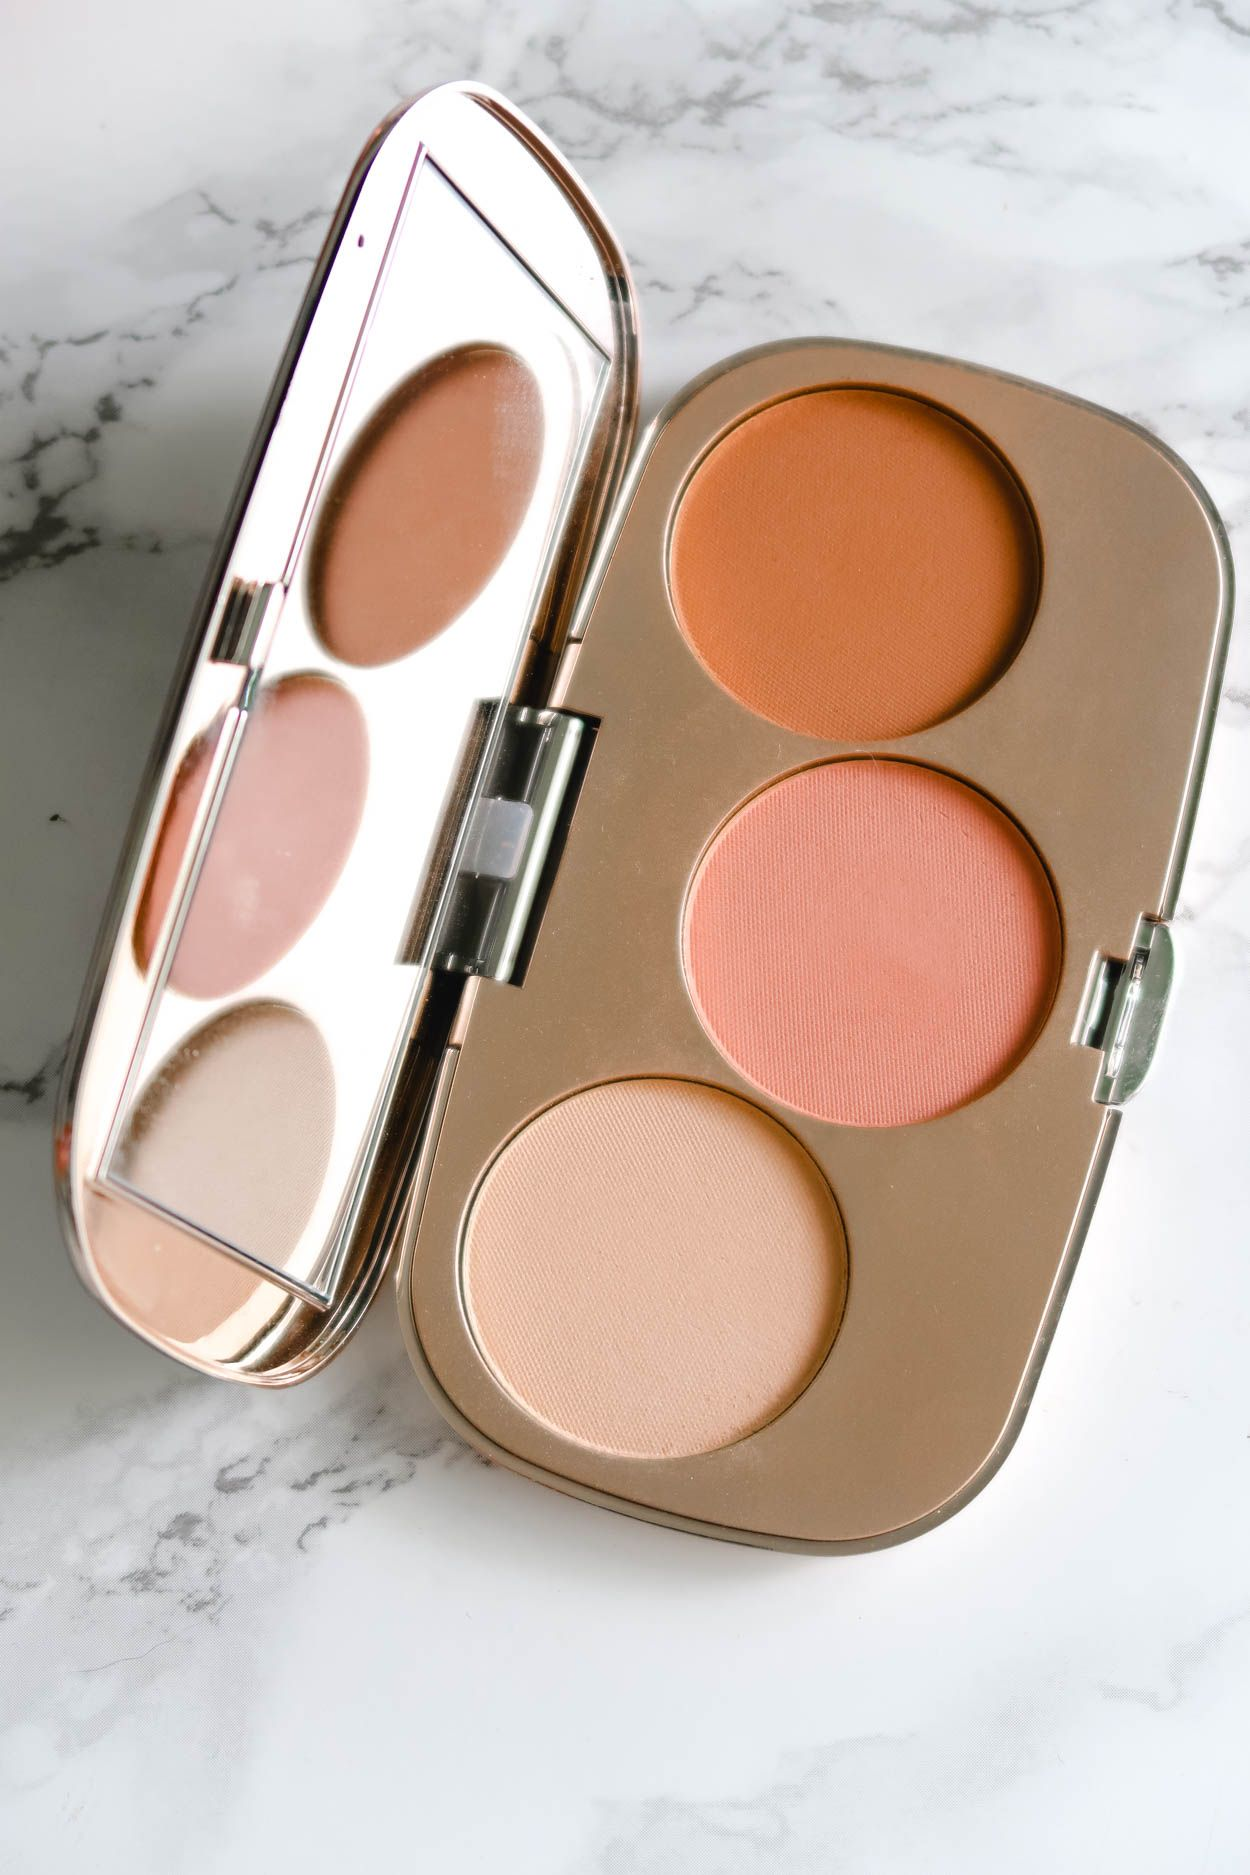 Jane Iredale The Skincare Makeup Magical makeup, Makeup